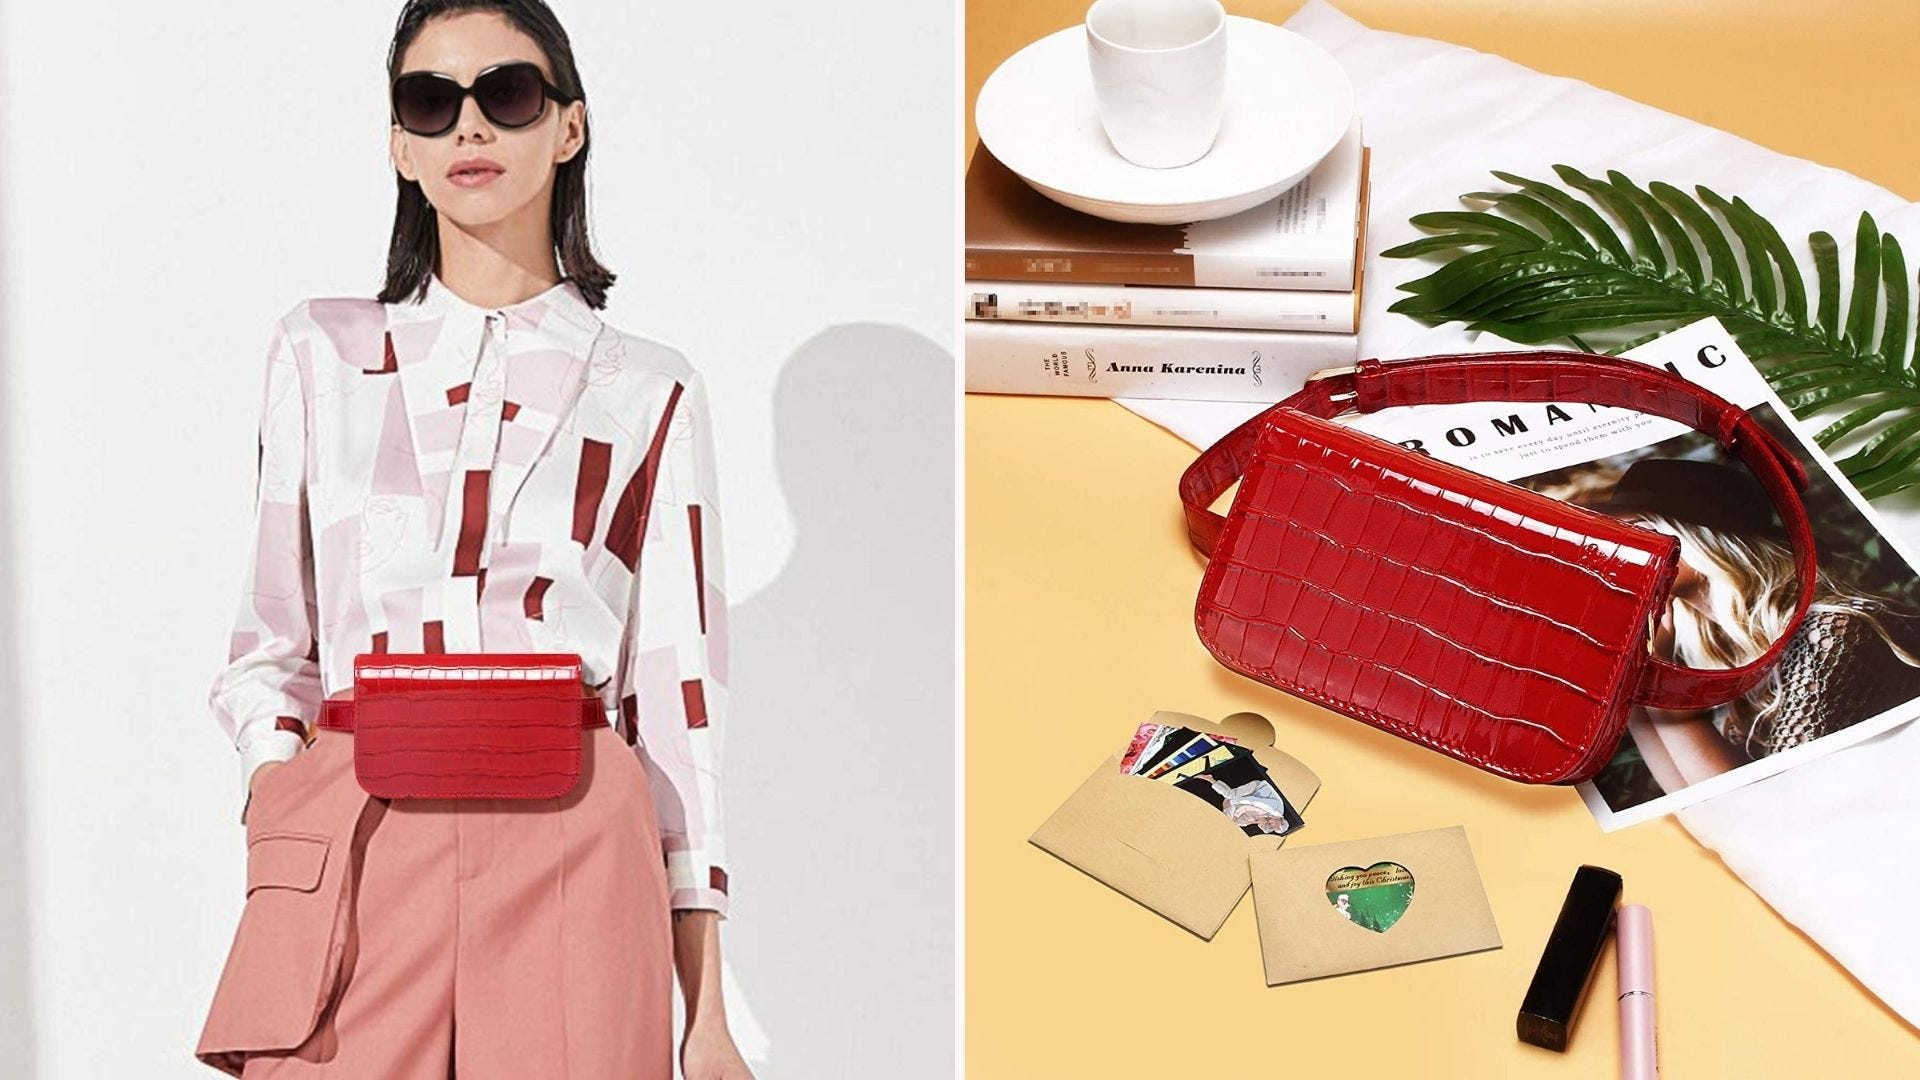 A stylish woman wearing the red Badiyah Waist bag and the red waist bag lying on a table next to some makeup tubes and a stack of books.